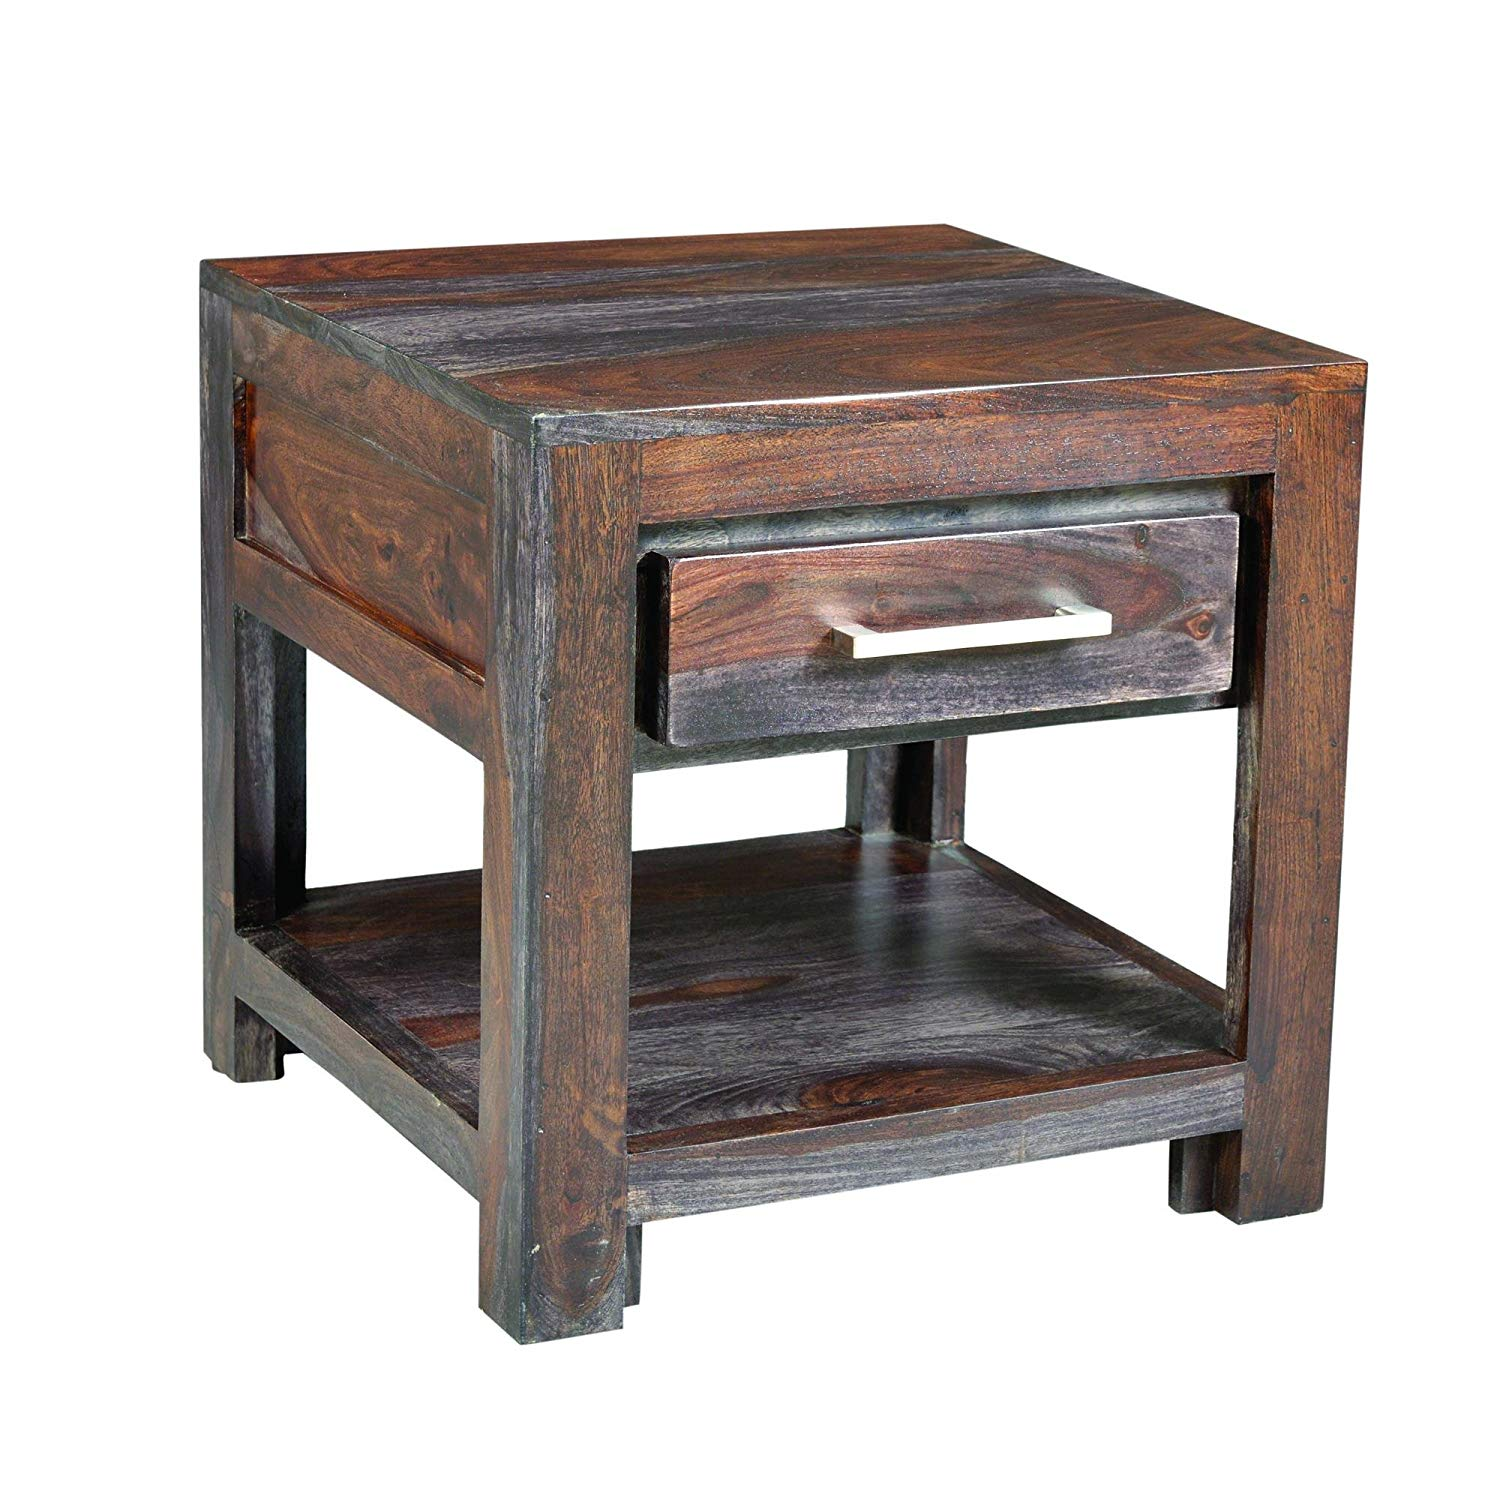 yosemite home decor yfur rosewood end table accent kitchen dining farmhouse breakfast plastic nic tables side height half round fabric chair clearance patio furniture sets ikea